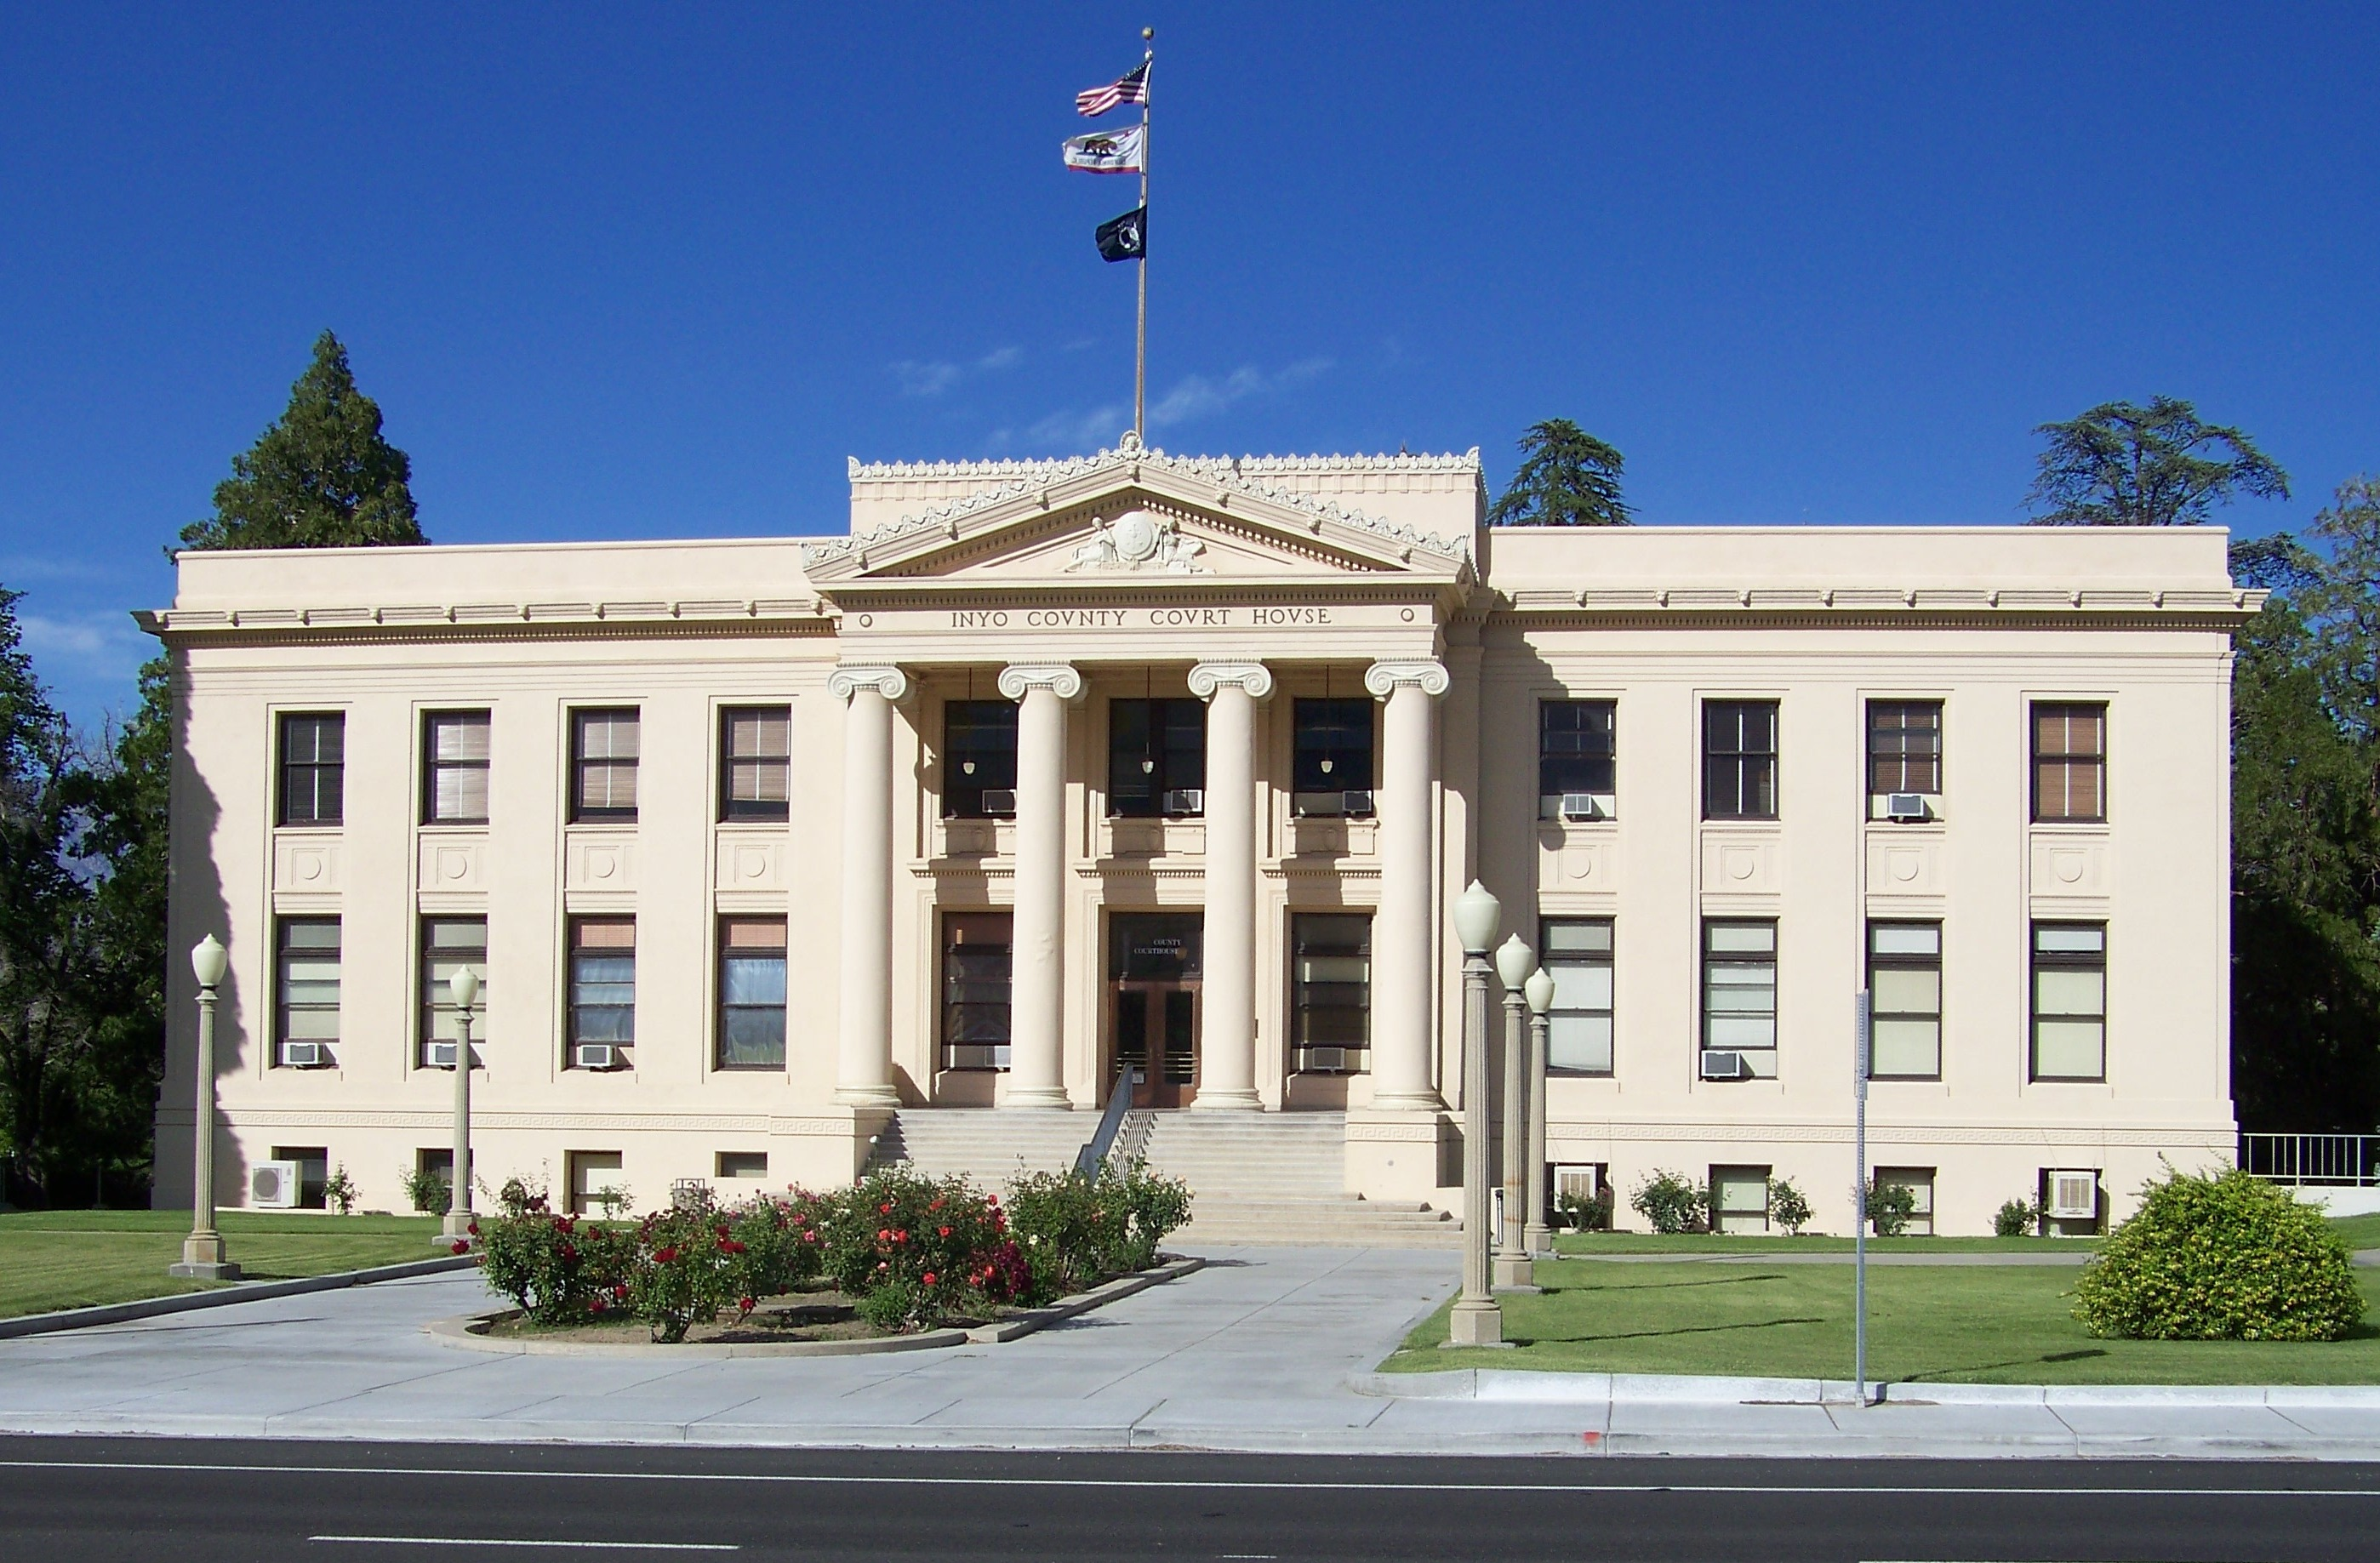 File Inyo County Court House JPG - Wikimedia Commons